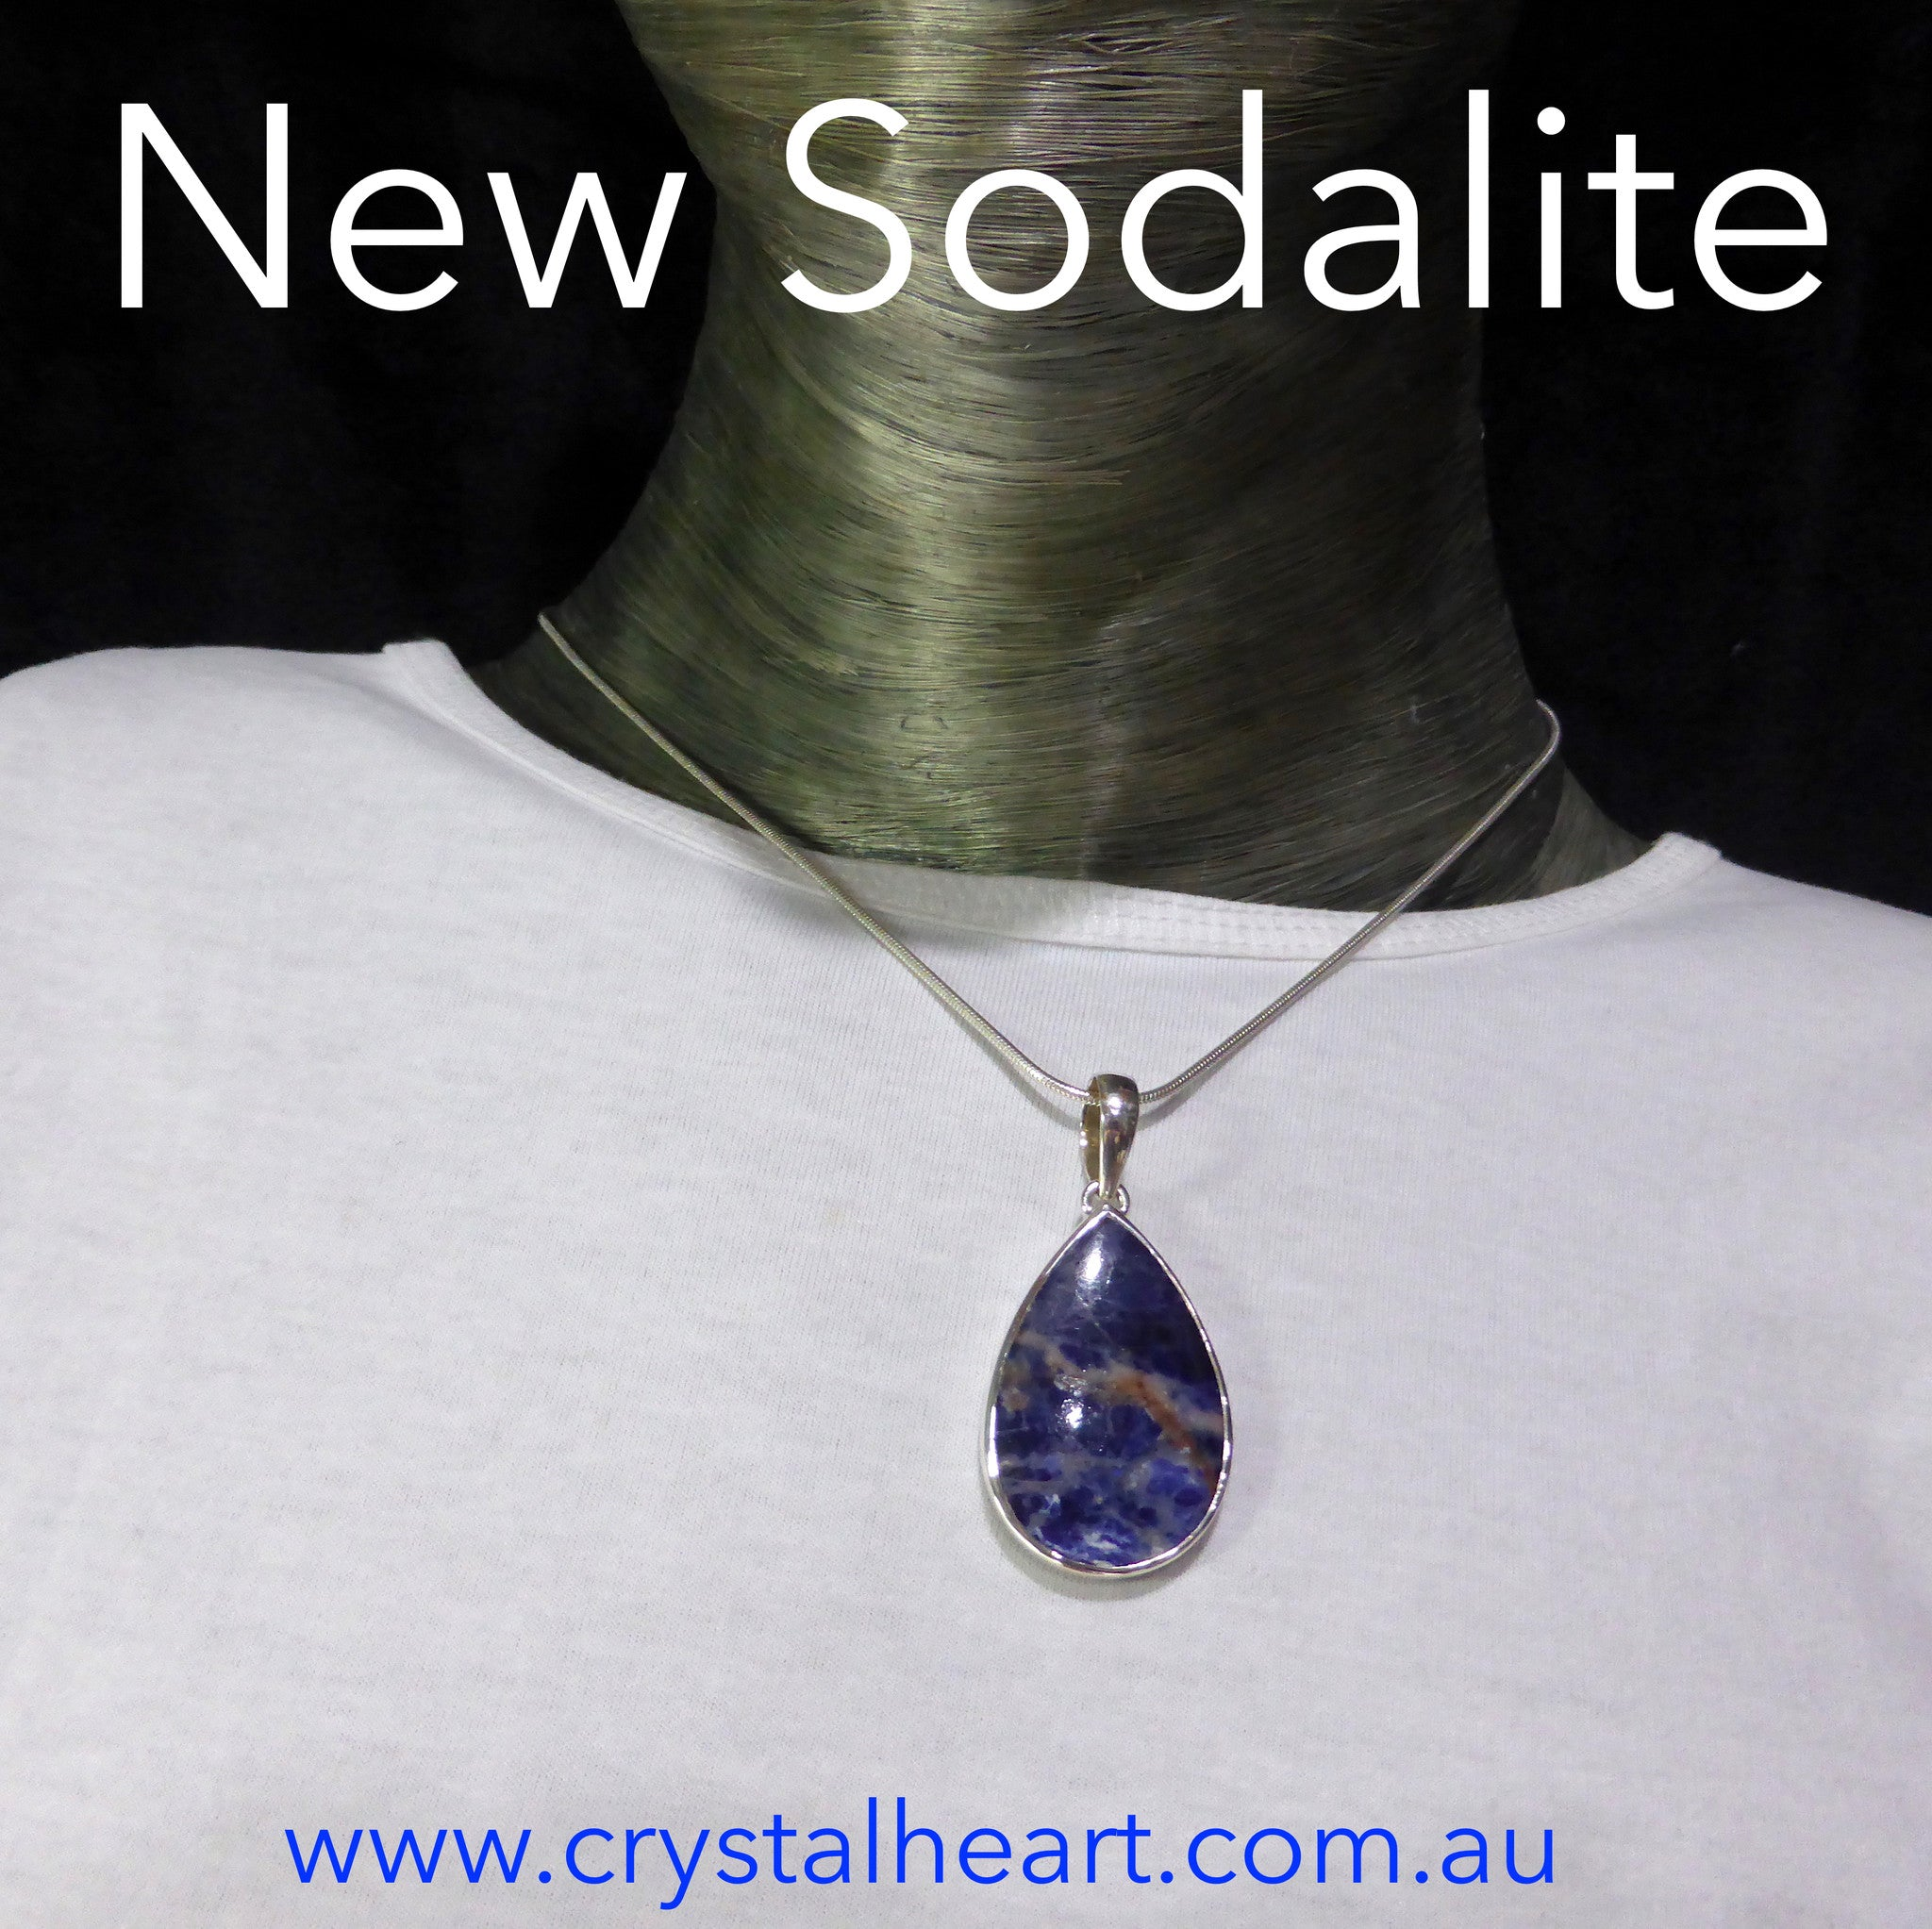 Sodalite Teardrop Pendant | 925 Sterling Silver | Translucent | Mental balance and enlightenment | Sagittarius | Crystal Heart Melbourne Australia since 1986